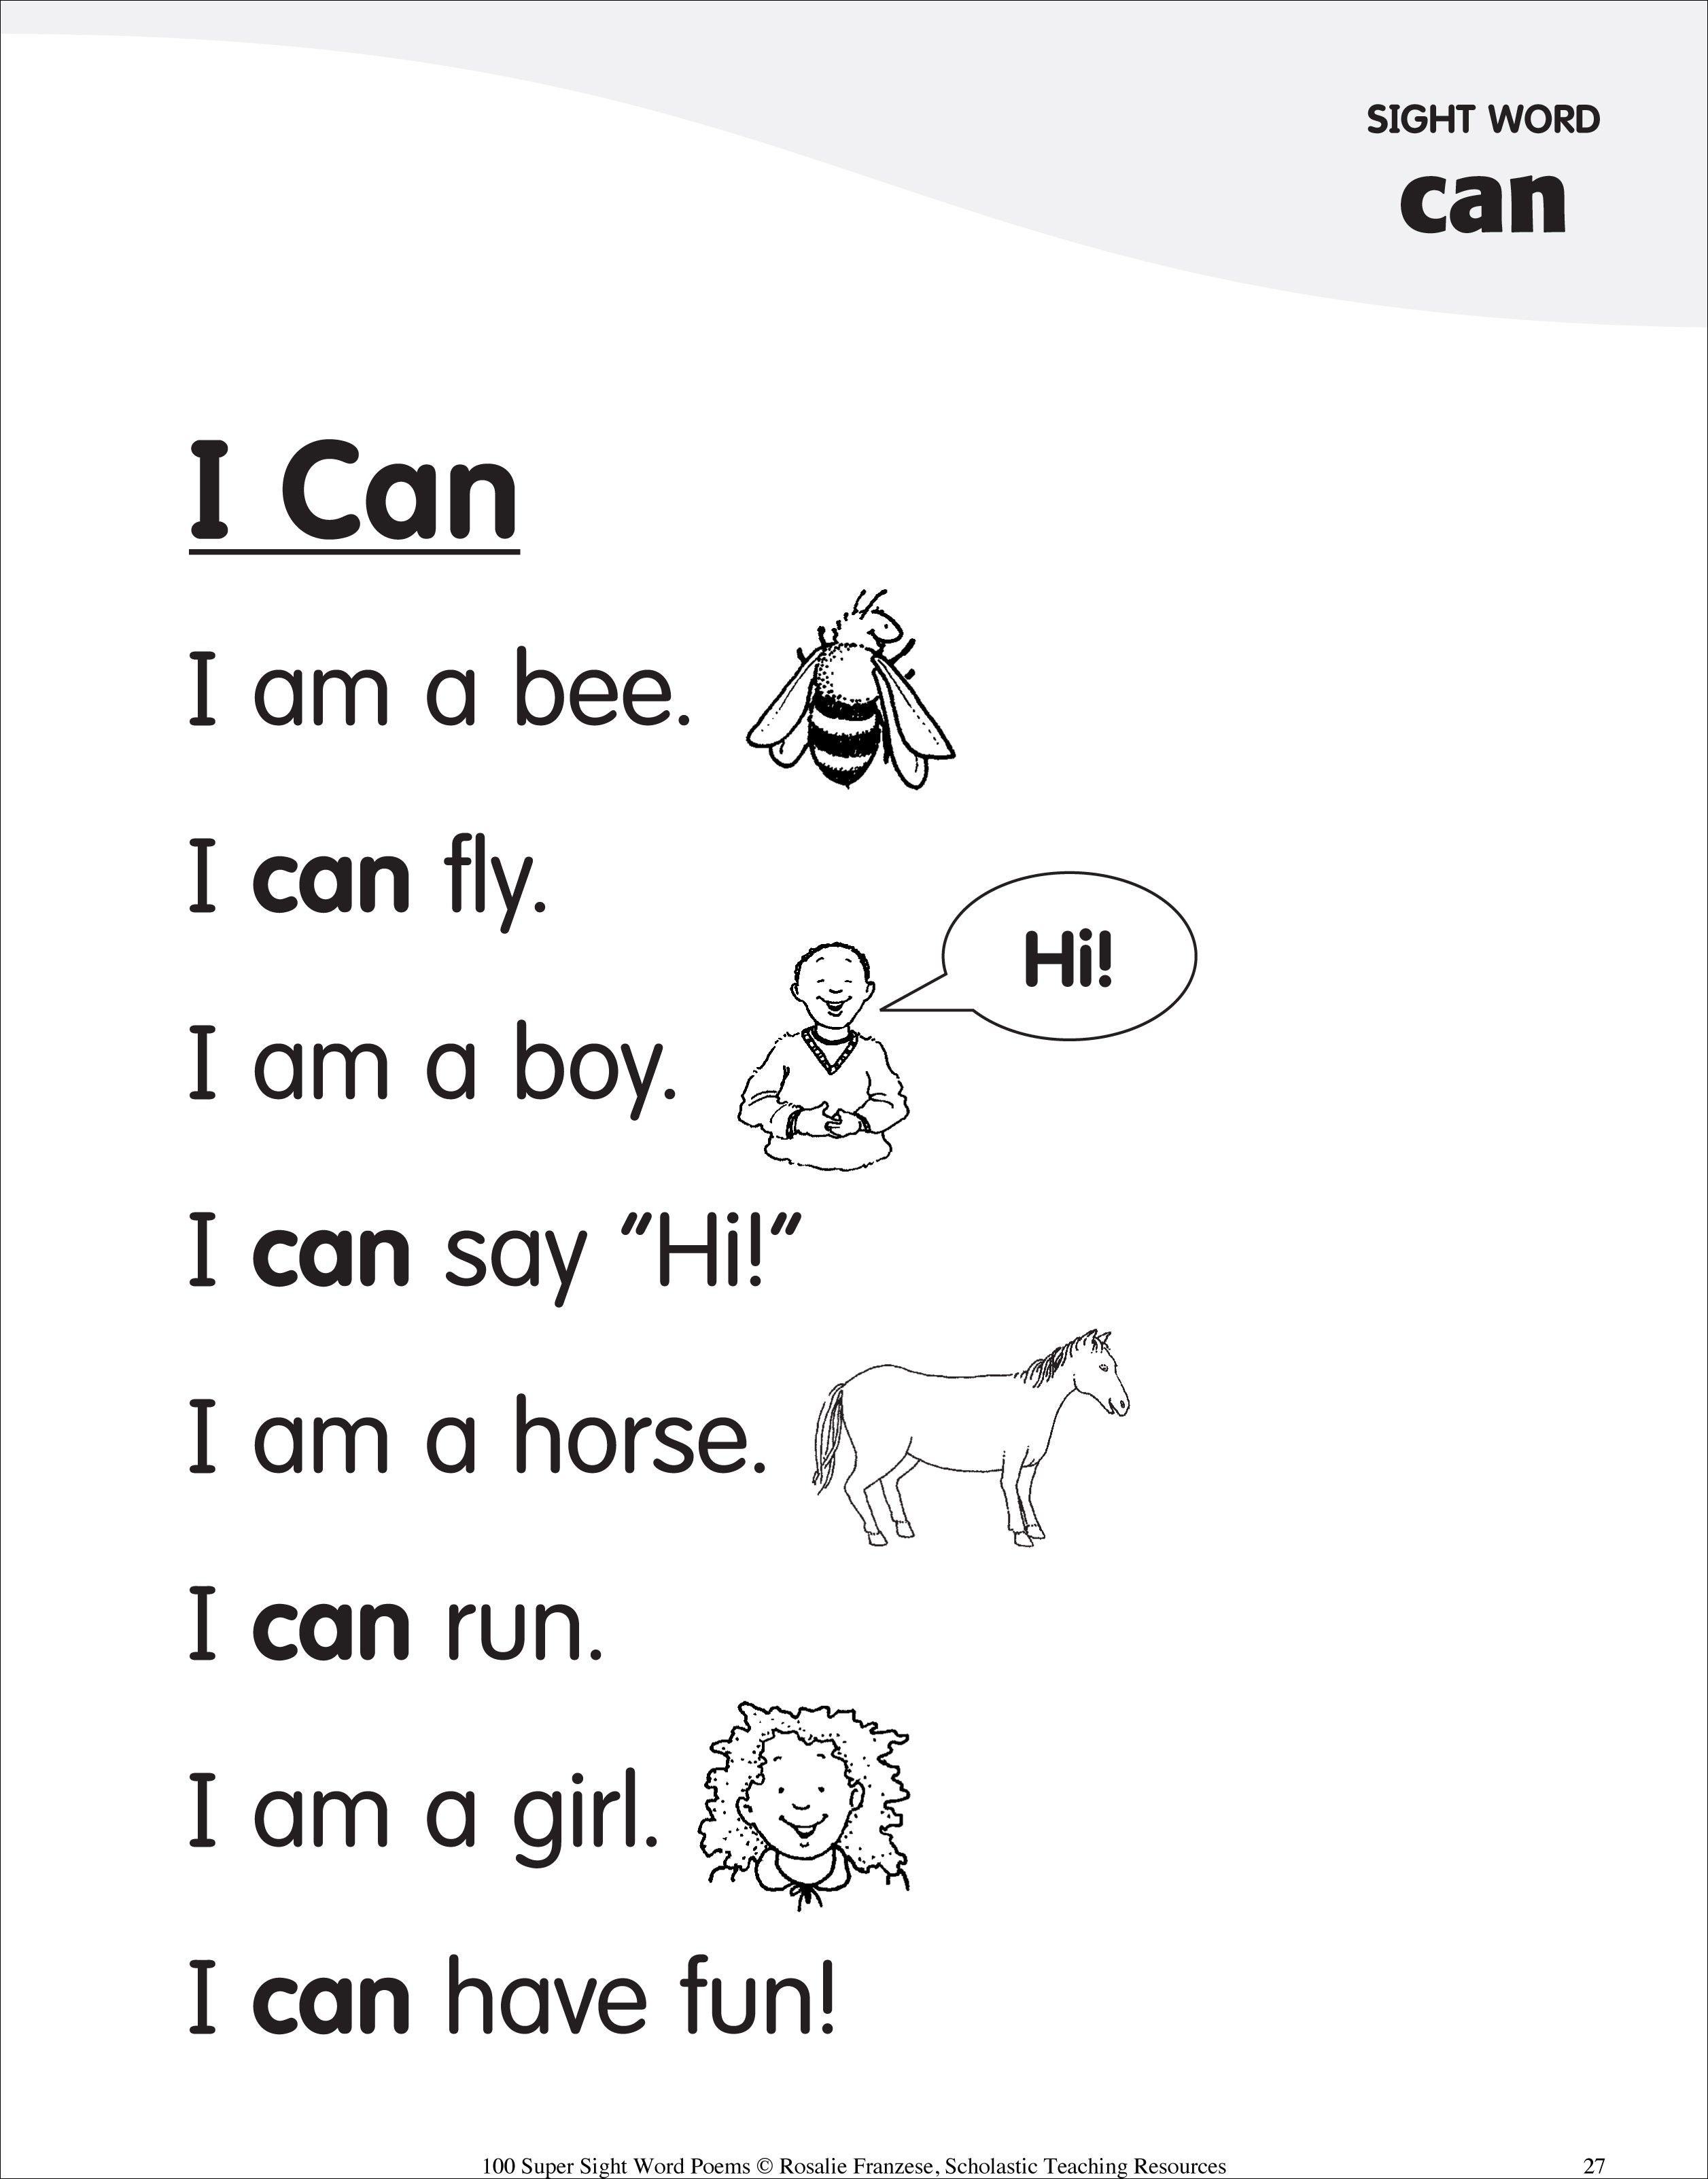 Sight Word Poem For Can